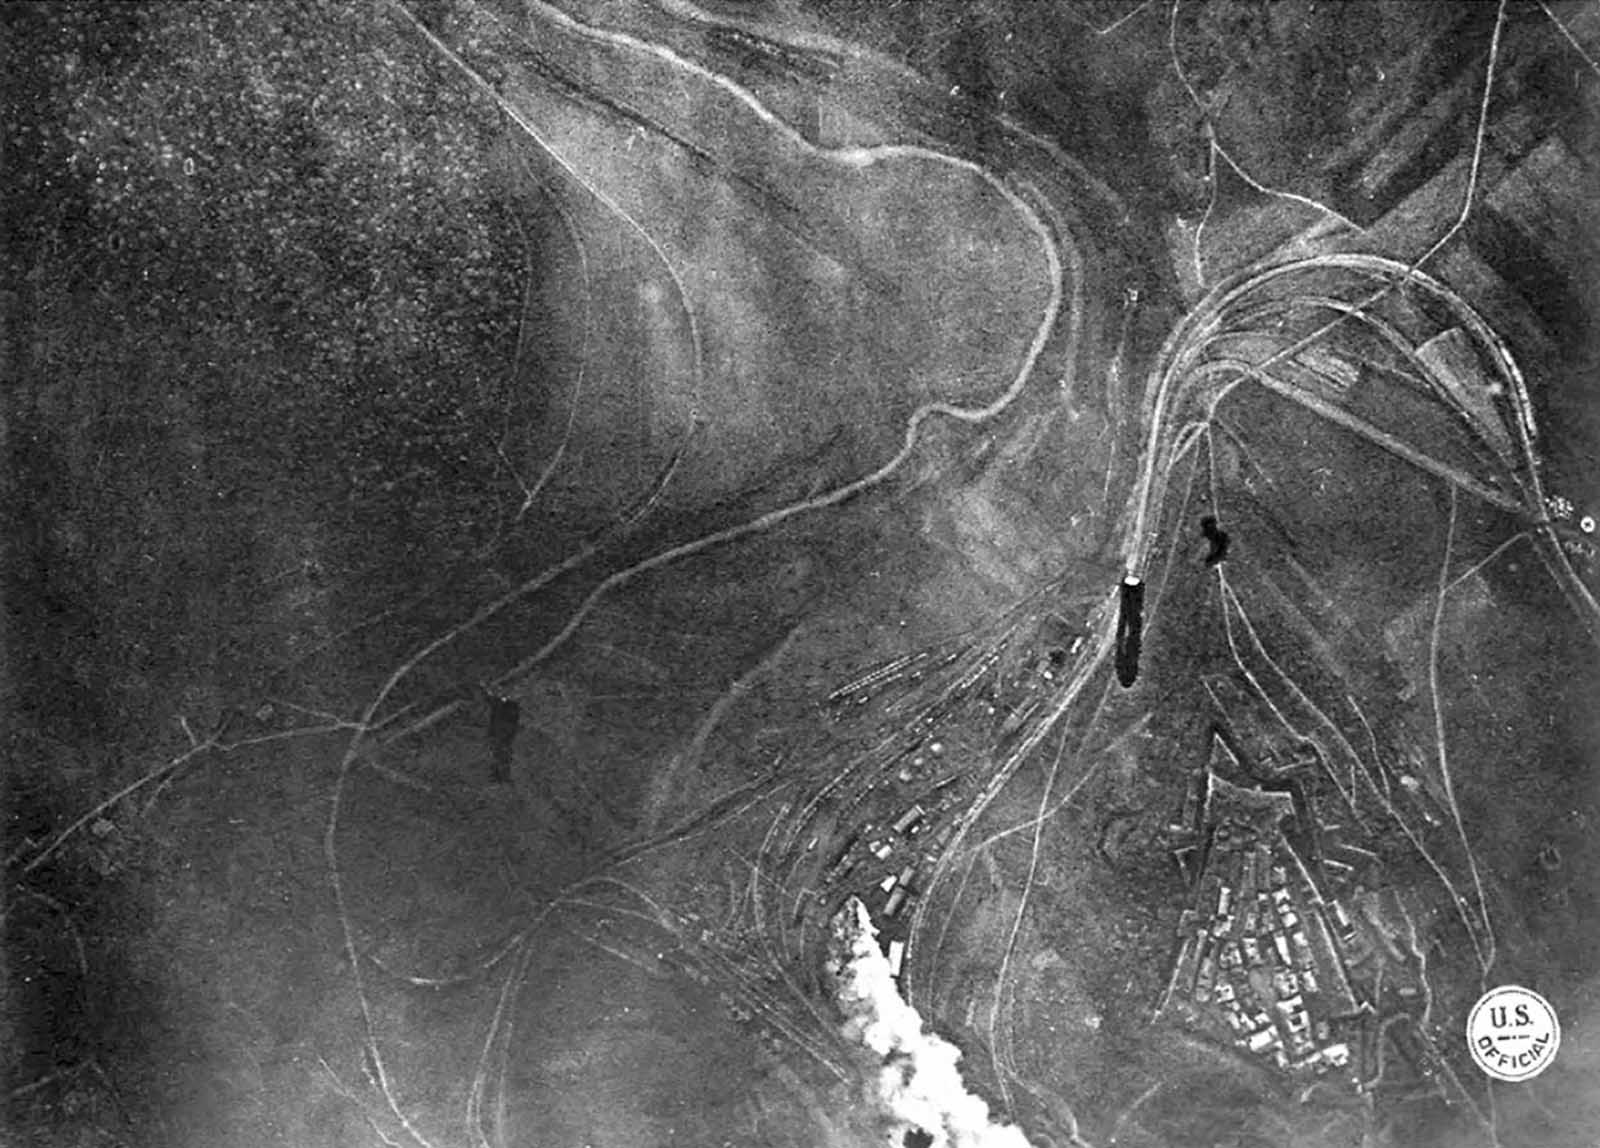 Bombing Montmedy, 42 km north of Verdun, while American troops advance in the Meuse-Argonne sector. Three bombs have been released by a U.S. bomber, one striking a supply station, the other two in mid-air, visible on their way down. Black puffs of smoke indicate anti-aircraft fire. To the right (west), a building with a Red Cross symbol can be seen.